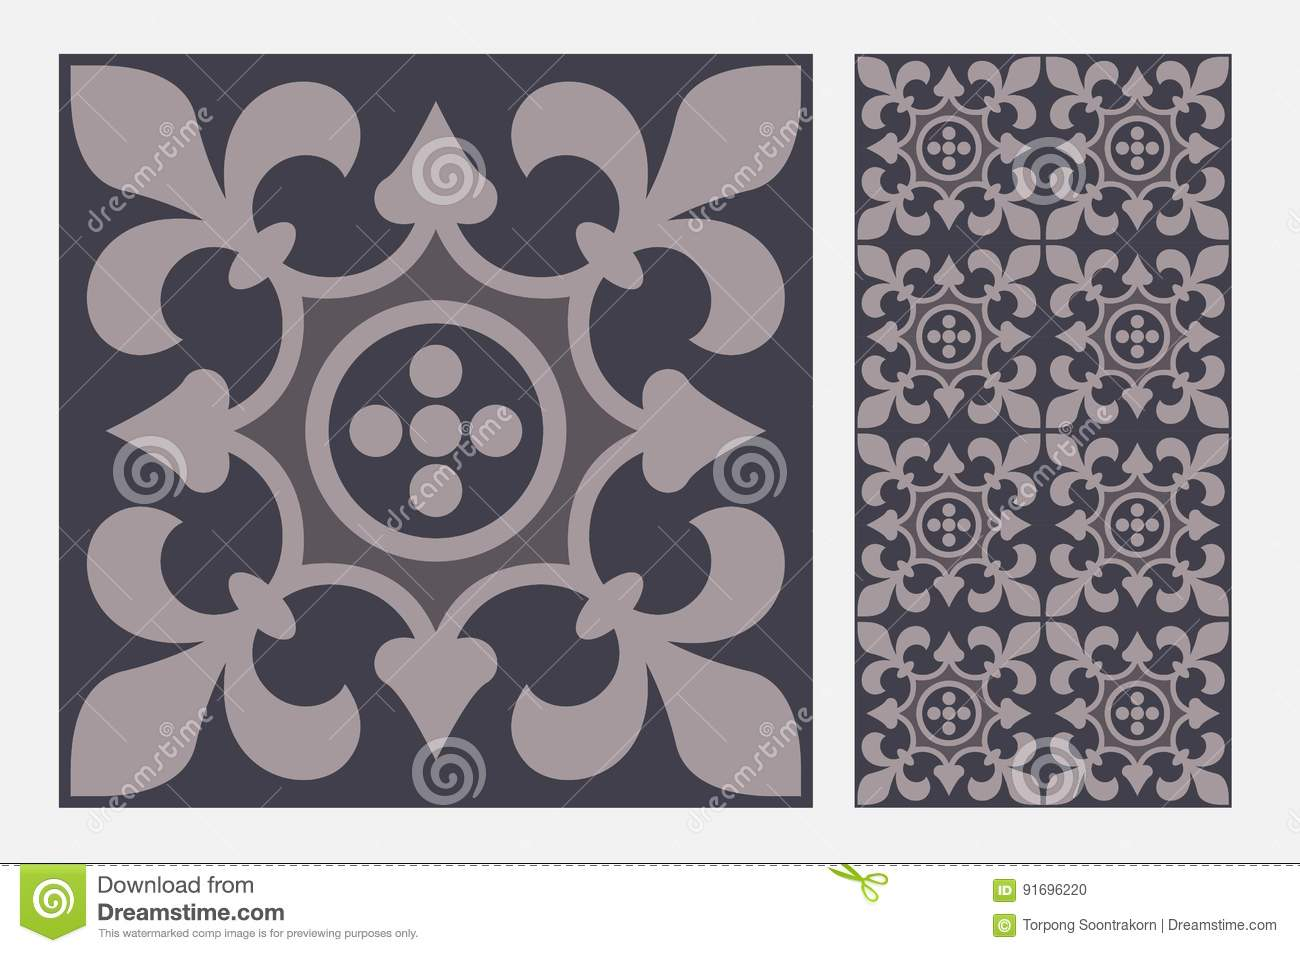 Vintage Tile Wall Craft Design Patterns Stock Vector Illustration